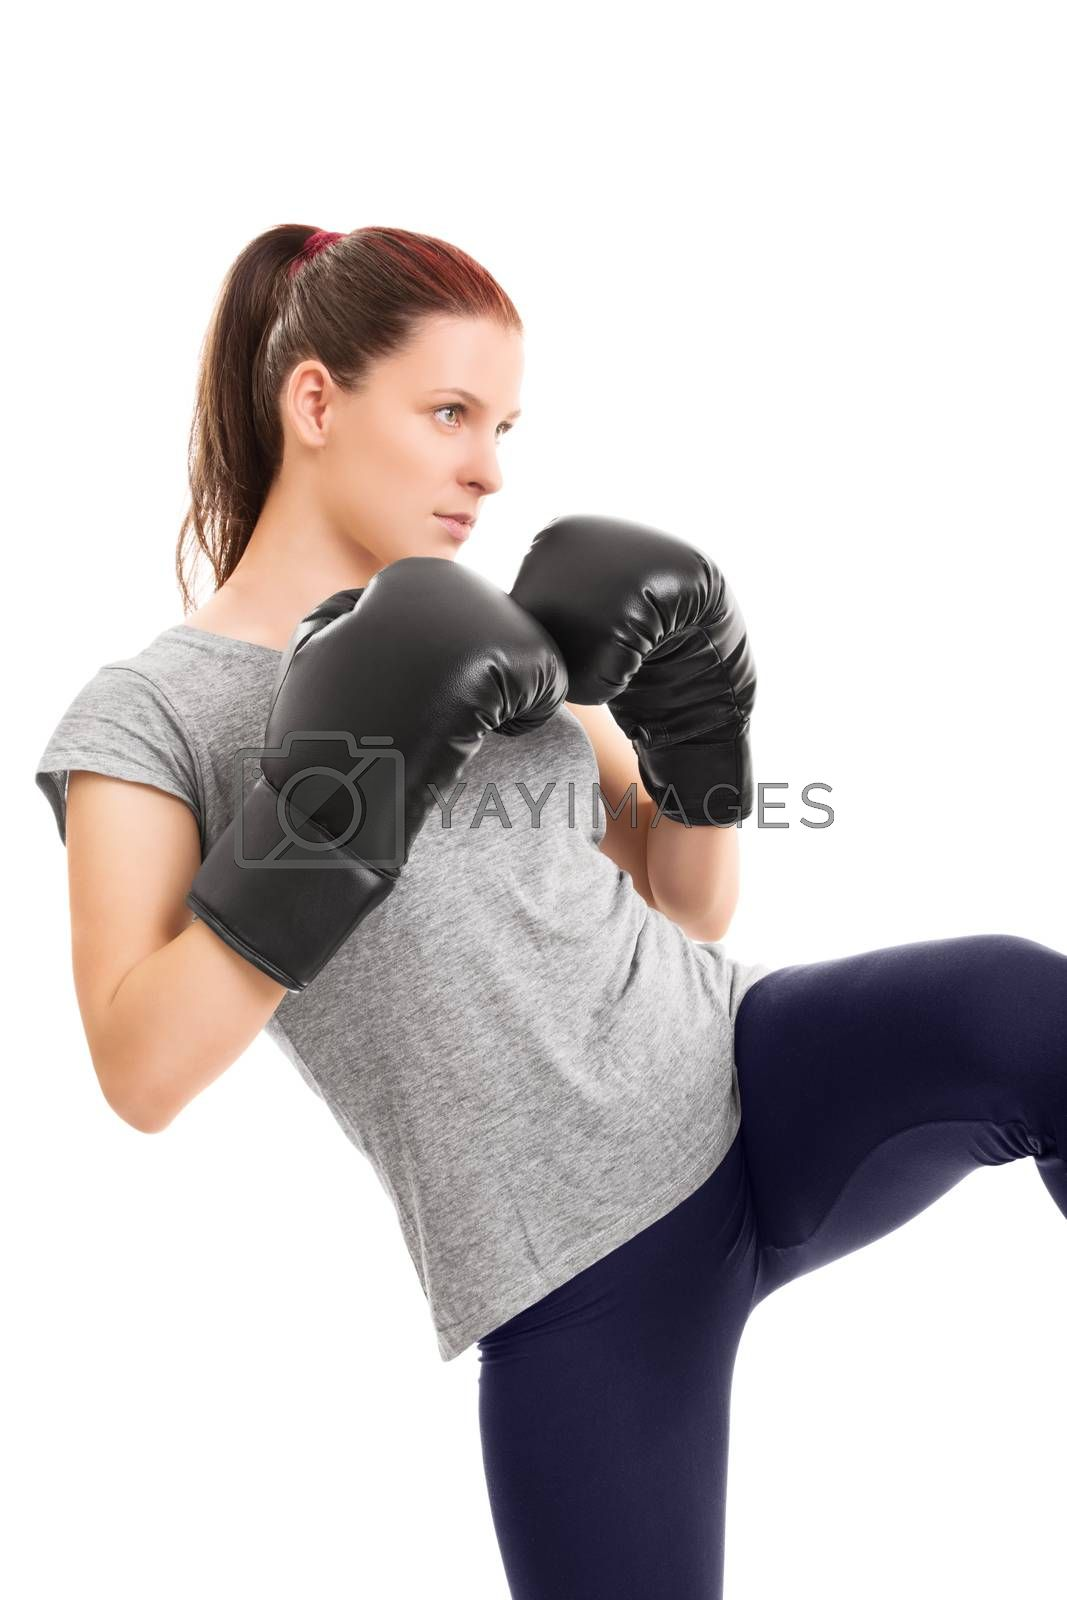 A profile of a beautiful young girl with boxing gloves delivering a kick, isolated on white background.